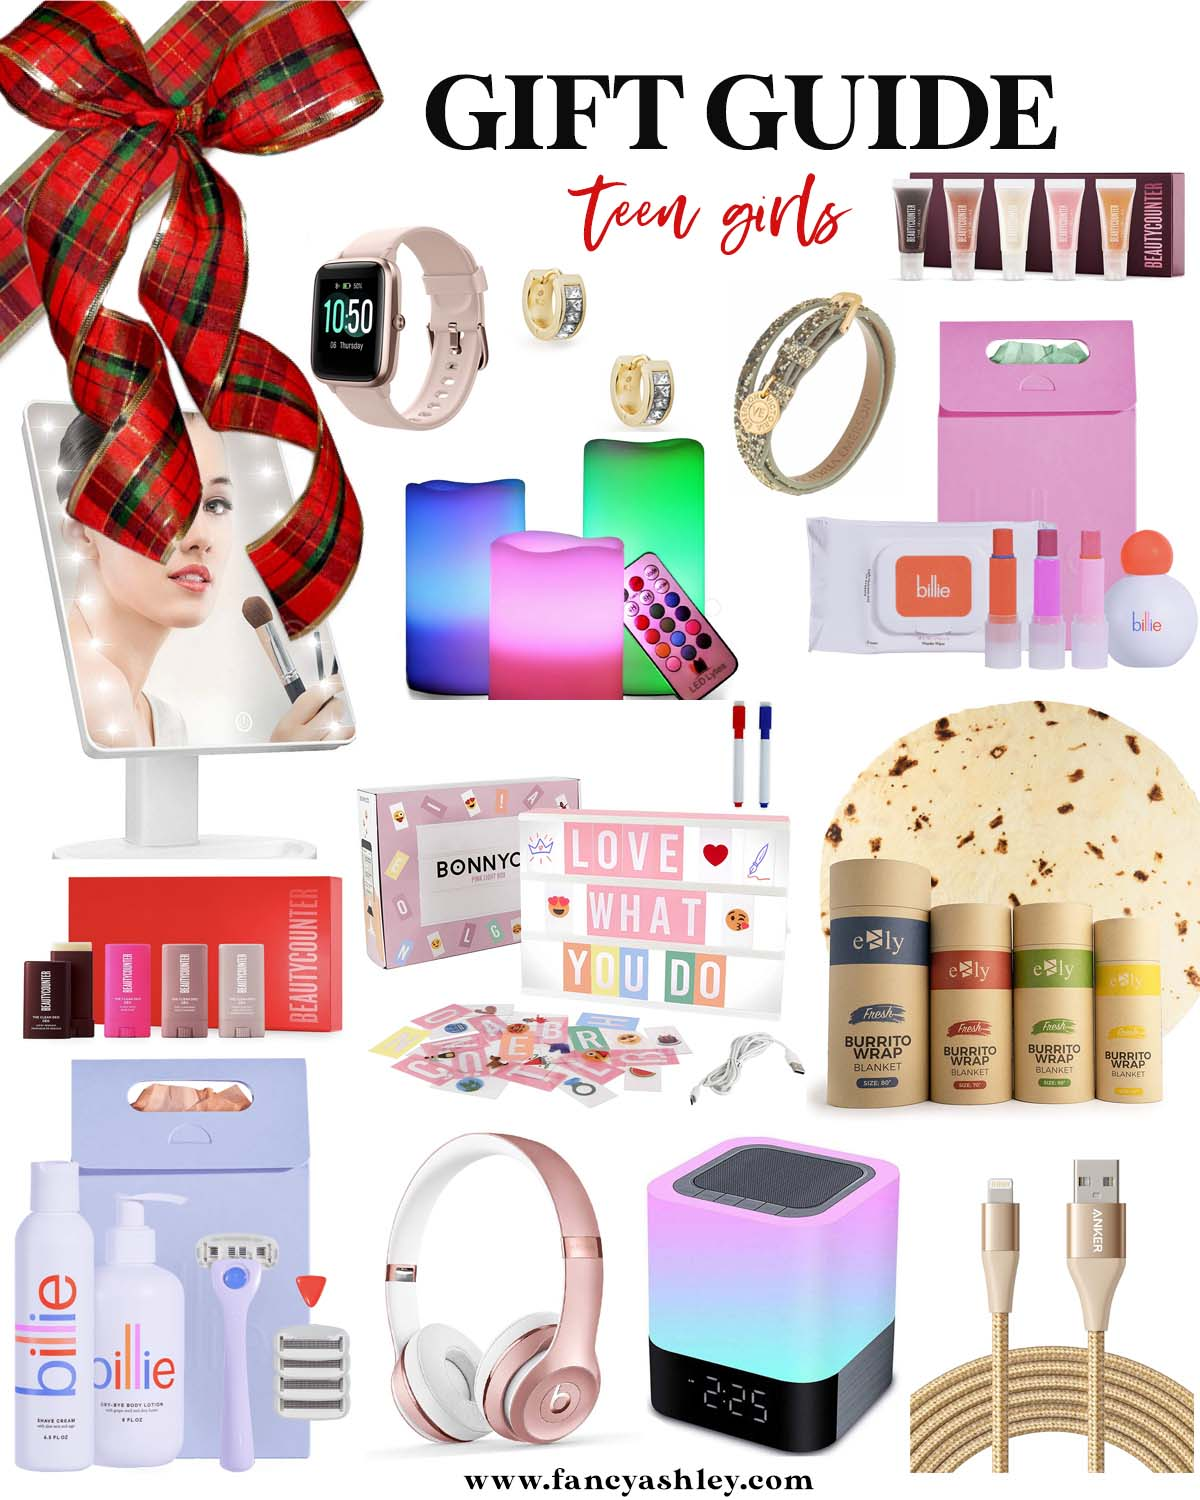 Teenage Girl Gift Ideas by popular Houston life and style blog, Fancy Ashley: collage image of a SMARTWATCH, EARRINGS, BRACELET, JELLY GLOSSES, MIRROR, LED COLOR CANDLES, MAKEUP REMOVER WIPES, LIP BALM, DRY SHAMPOO SET, MINI DEODORANT SET, LIGHTBOX, BURRITO BLANKET, BILLIE RAZOR SET, BEATS HEADPHONES, CLOCK, and LONG CHARGING CORD.